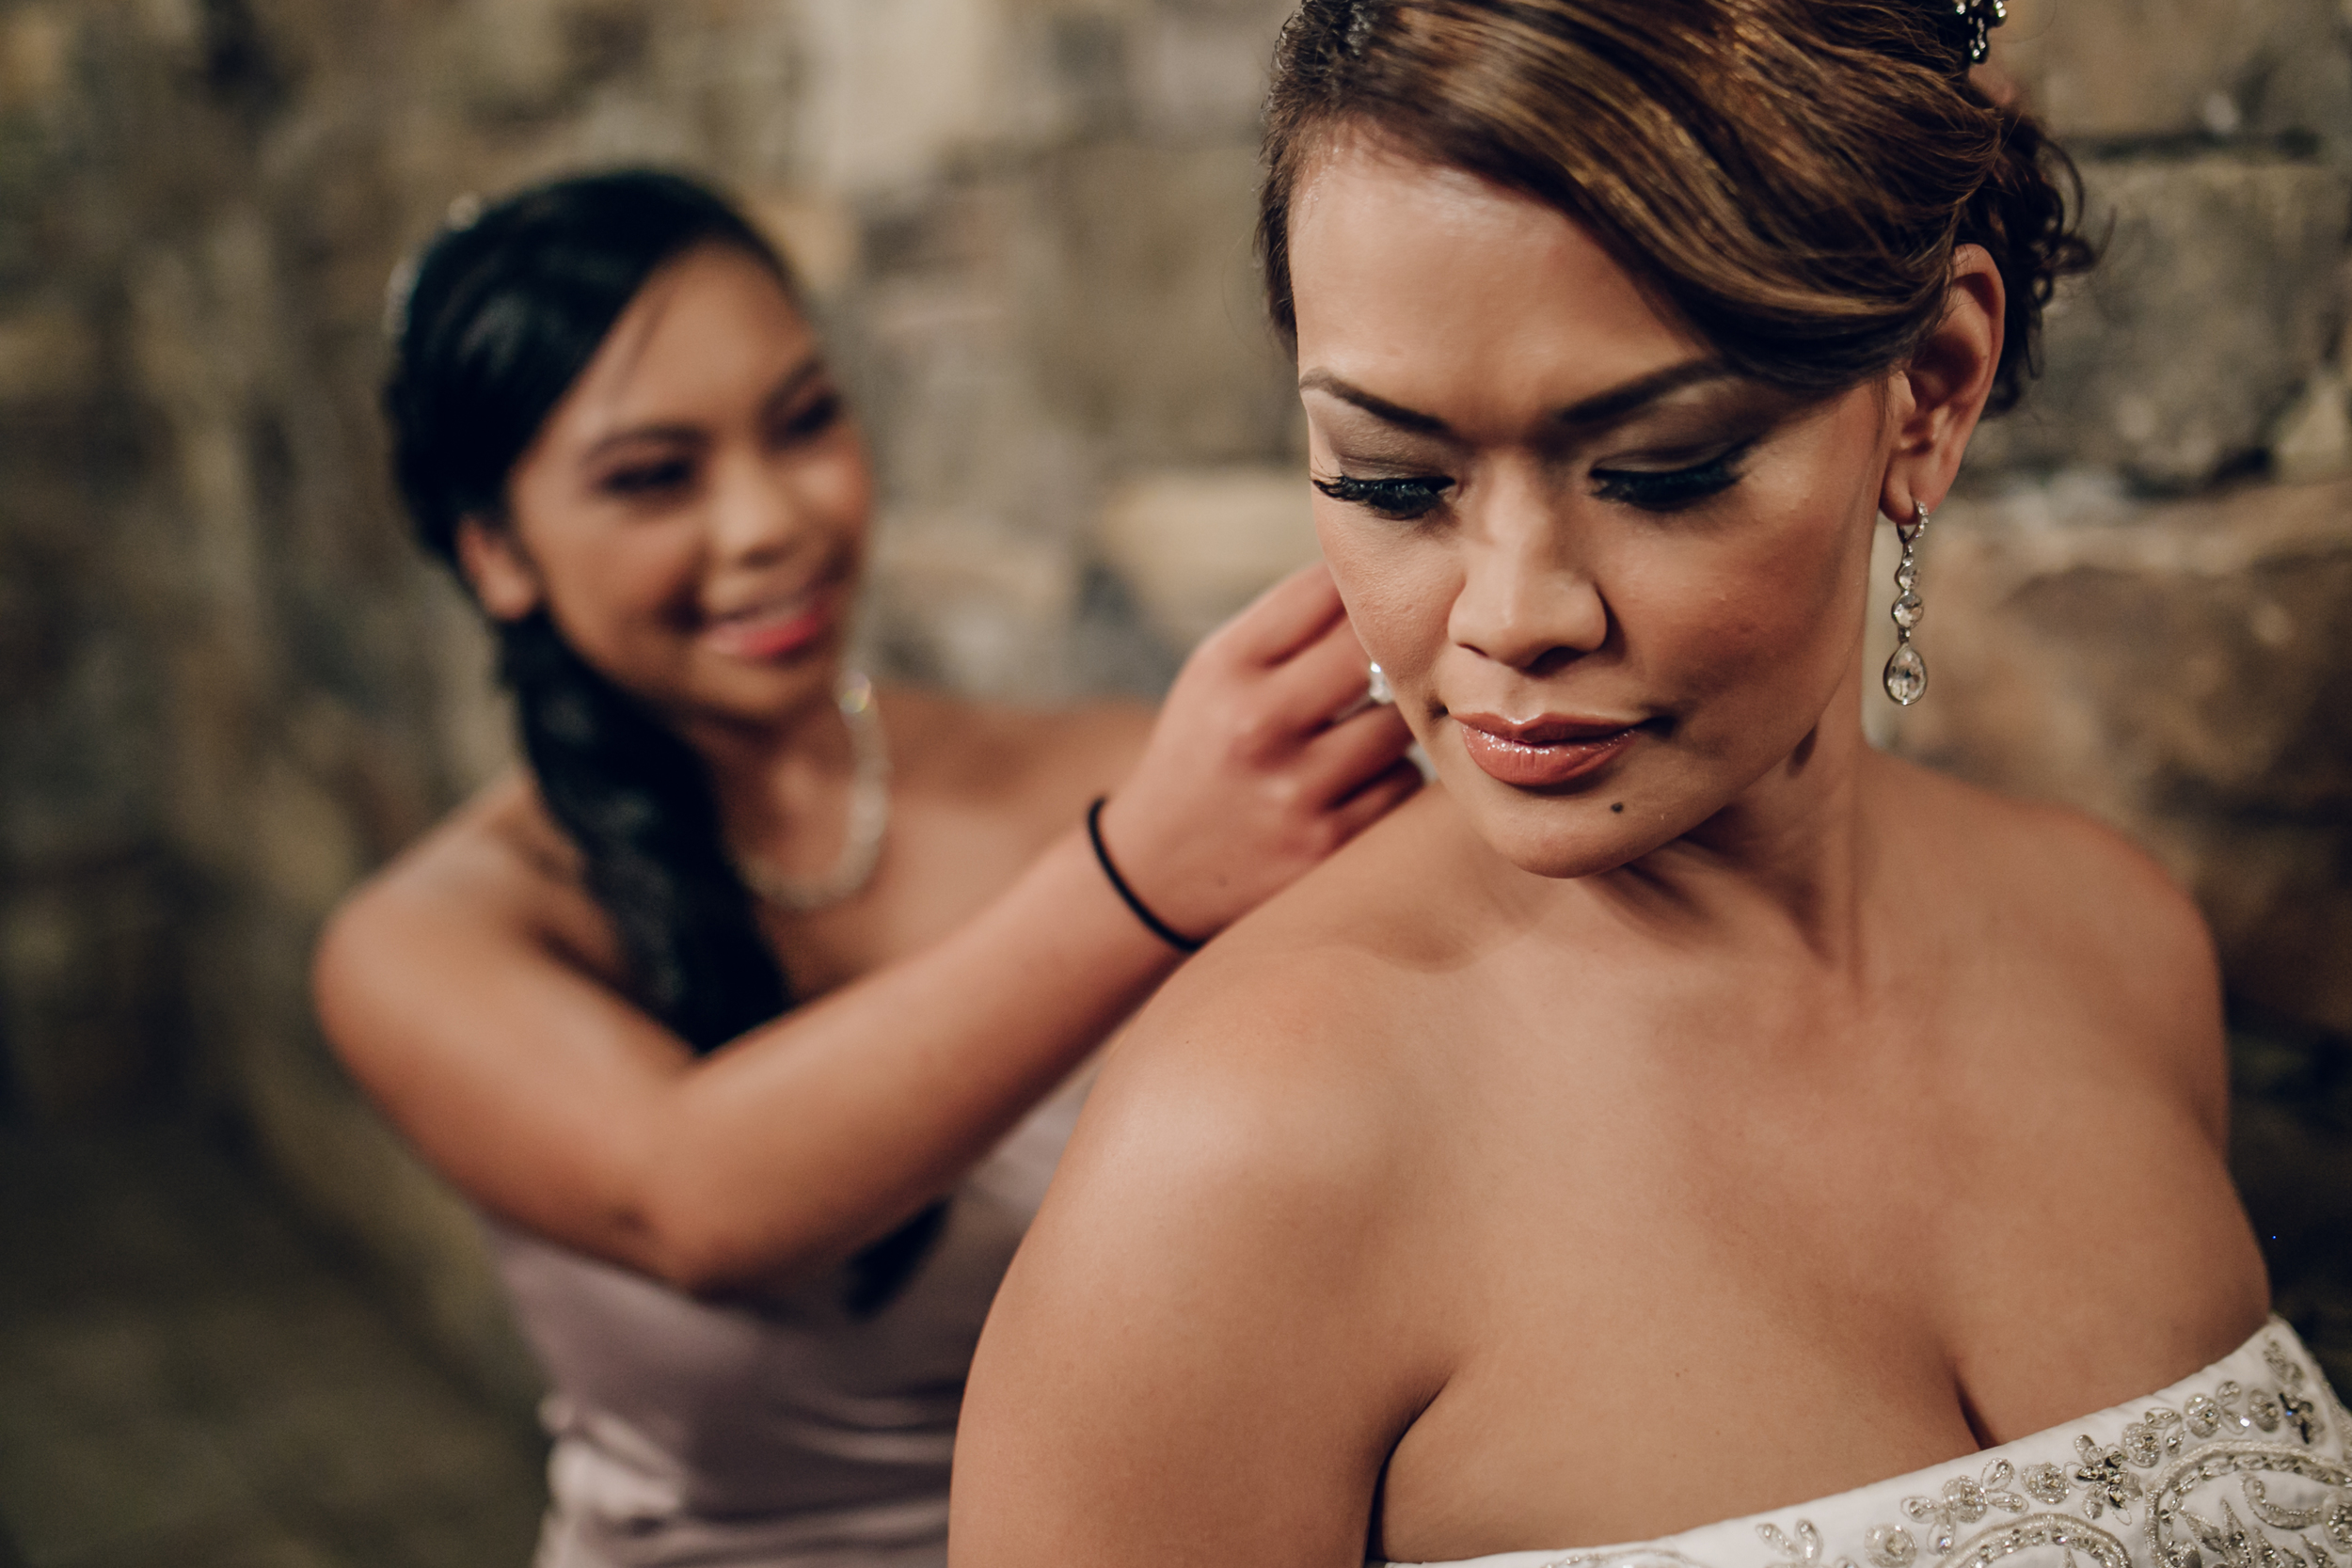 Shiela + Lester's Wedding 9-30-15 619.jpg